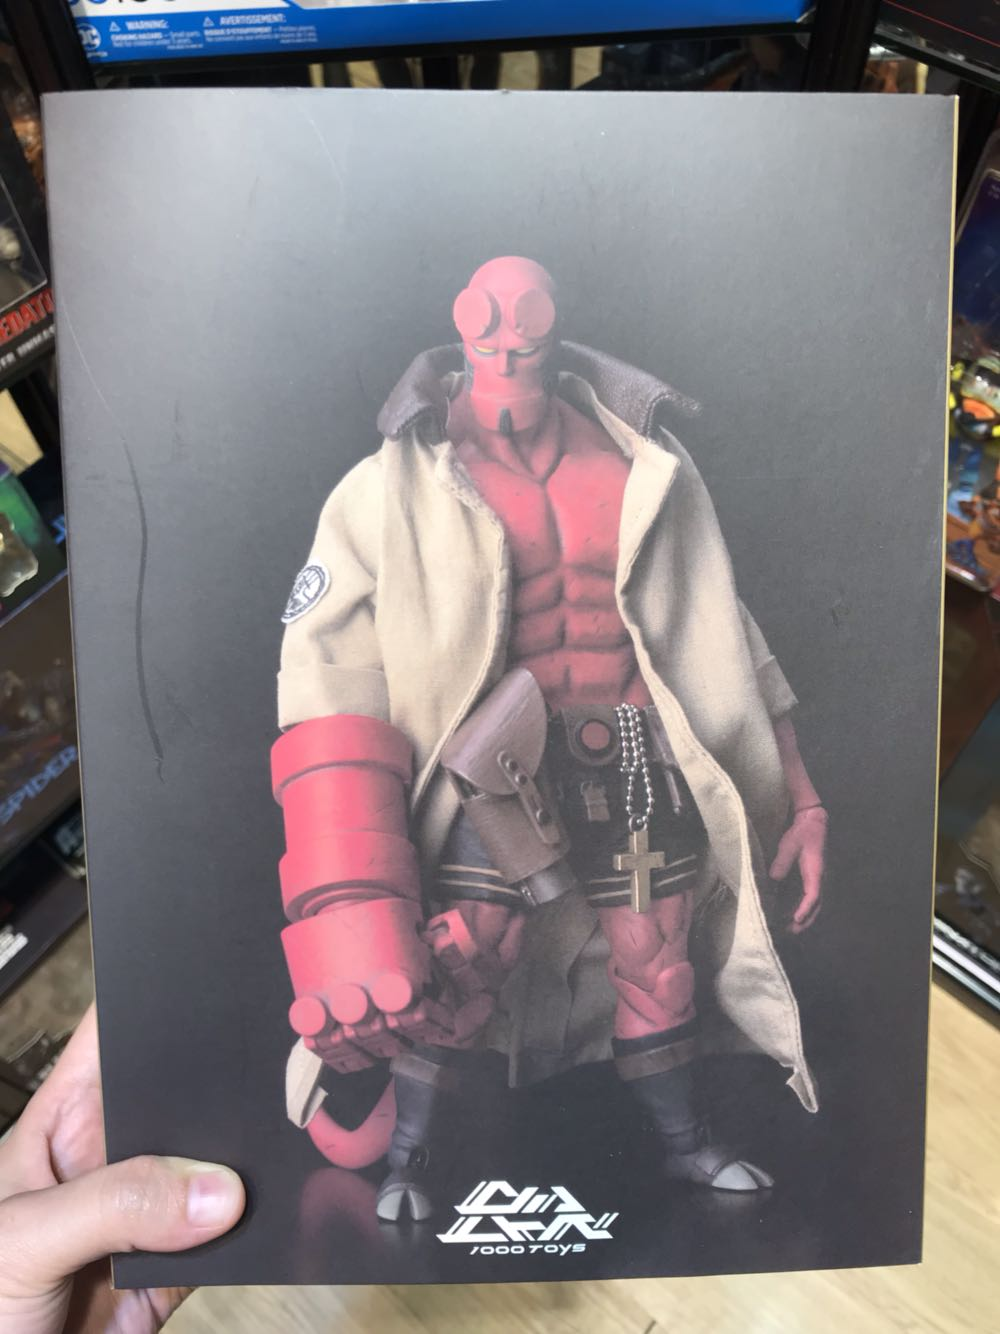 Hellboy Thousand Value Training Hellboy PVC Action Figure Collectible Model Gift Toy 18cmHellboy Thousand Value Training Hellboy PVC Action Figure Collectible Model Gift Toy 18cm